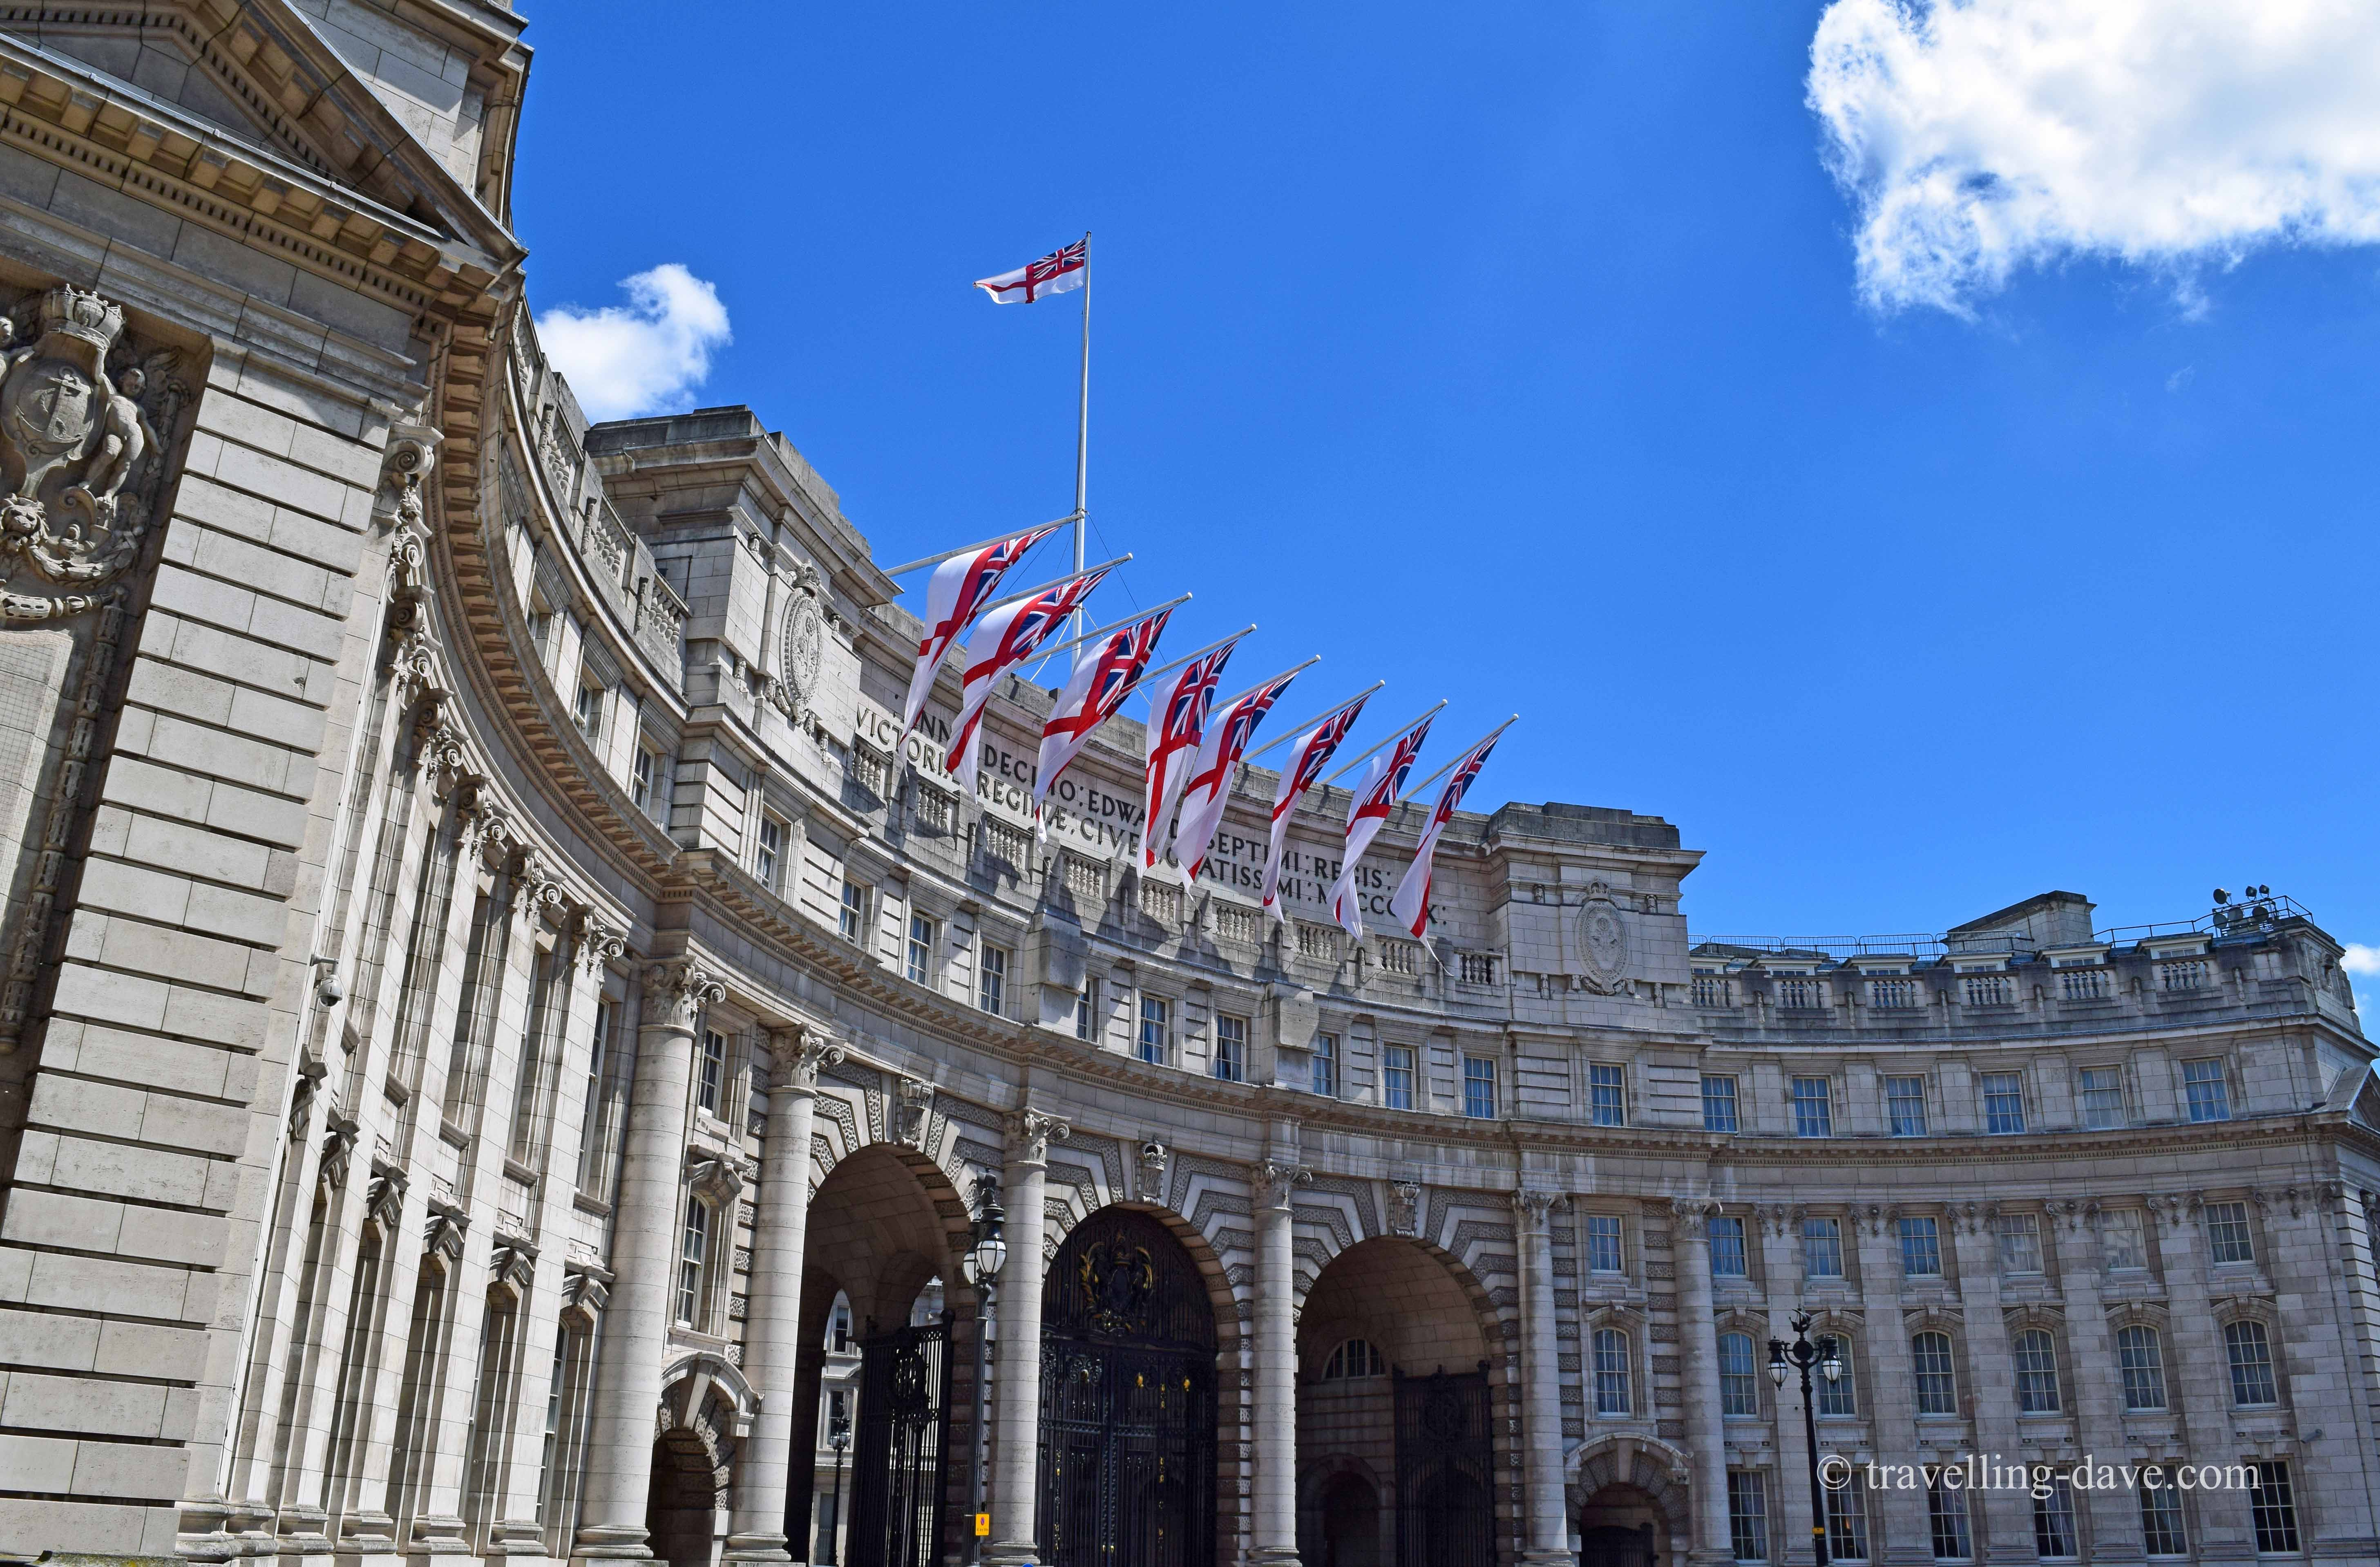 View of the Admiralty Arch on the Mall in London